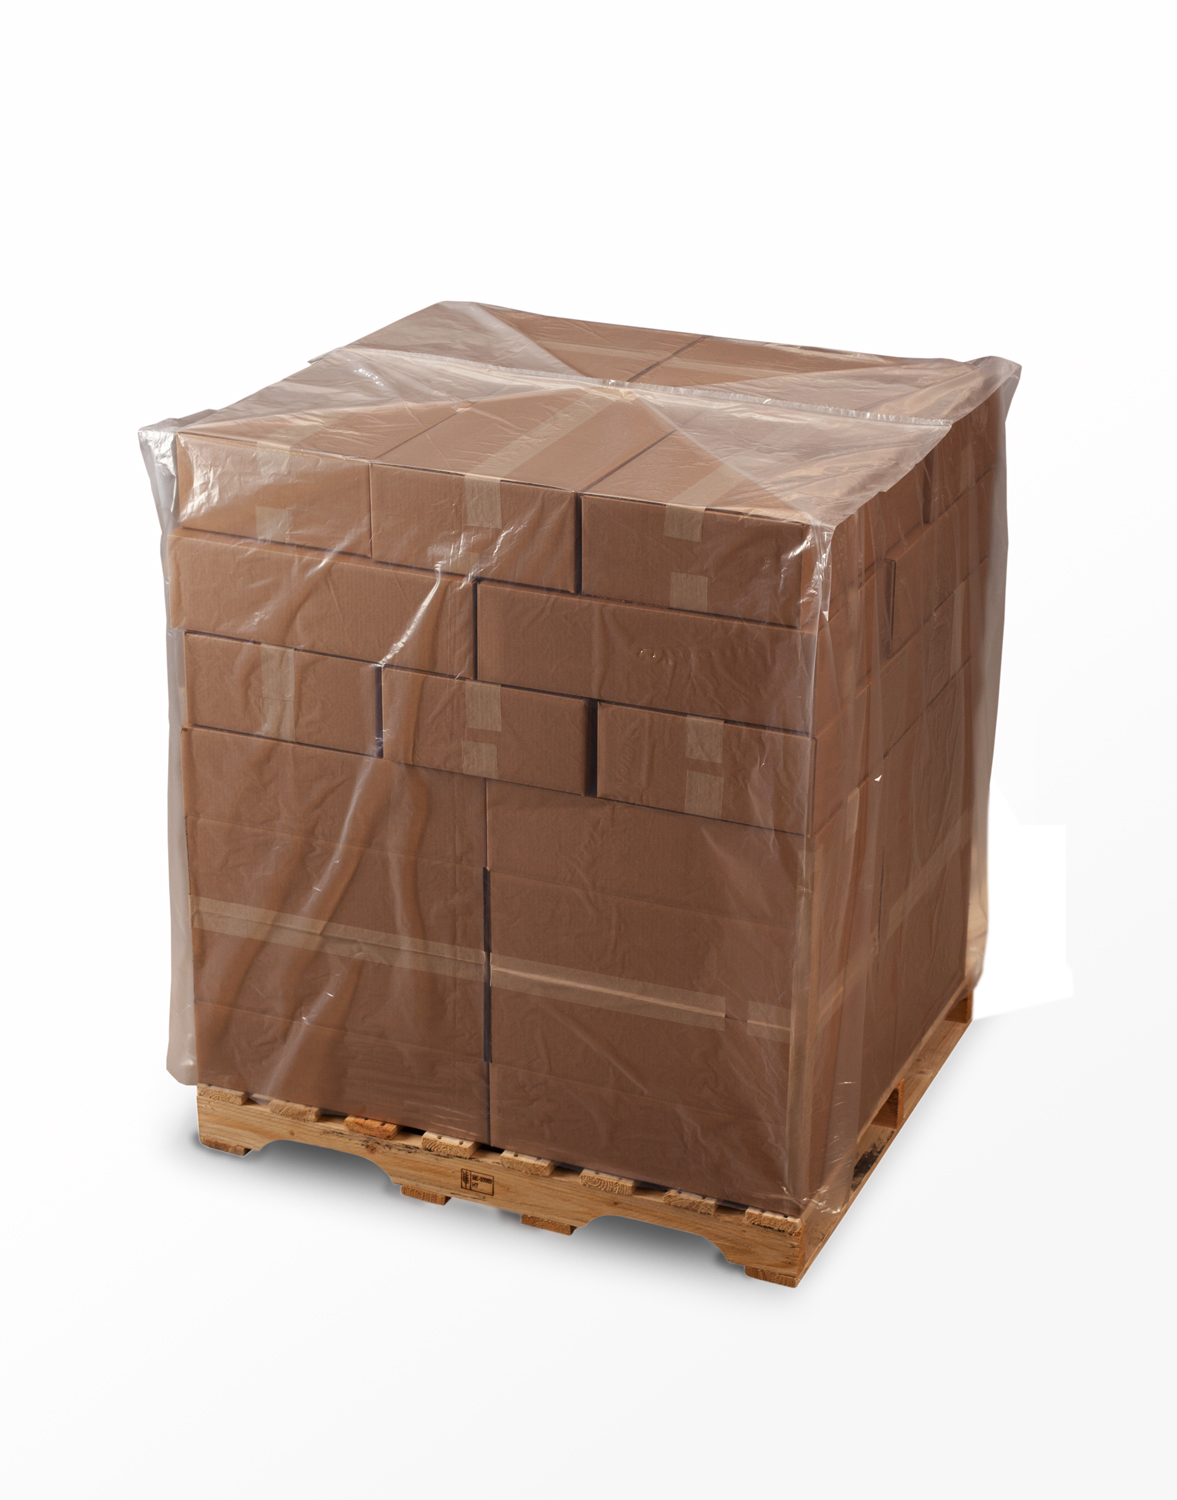 Clear Pallet Covers on Roll 51 x 49 x 85 x 4 Mil (49 in gusset) Roll:25